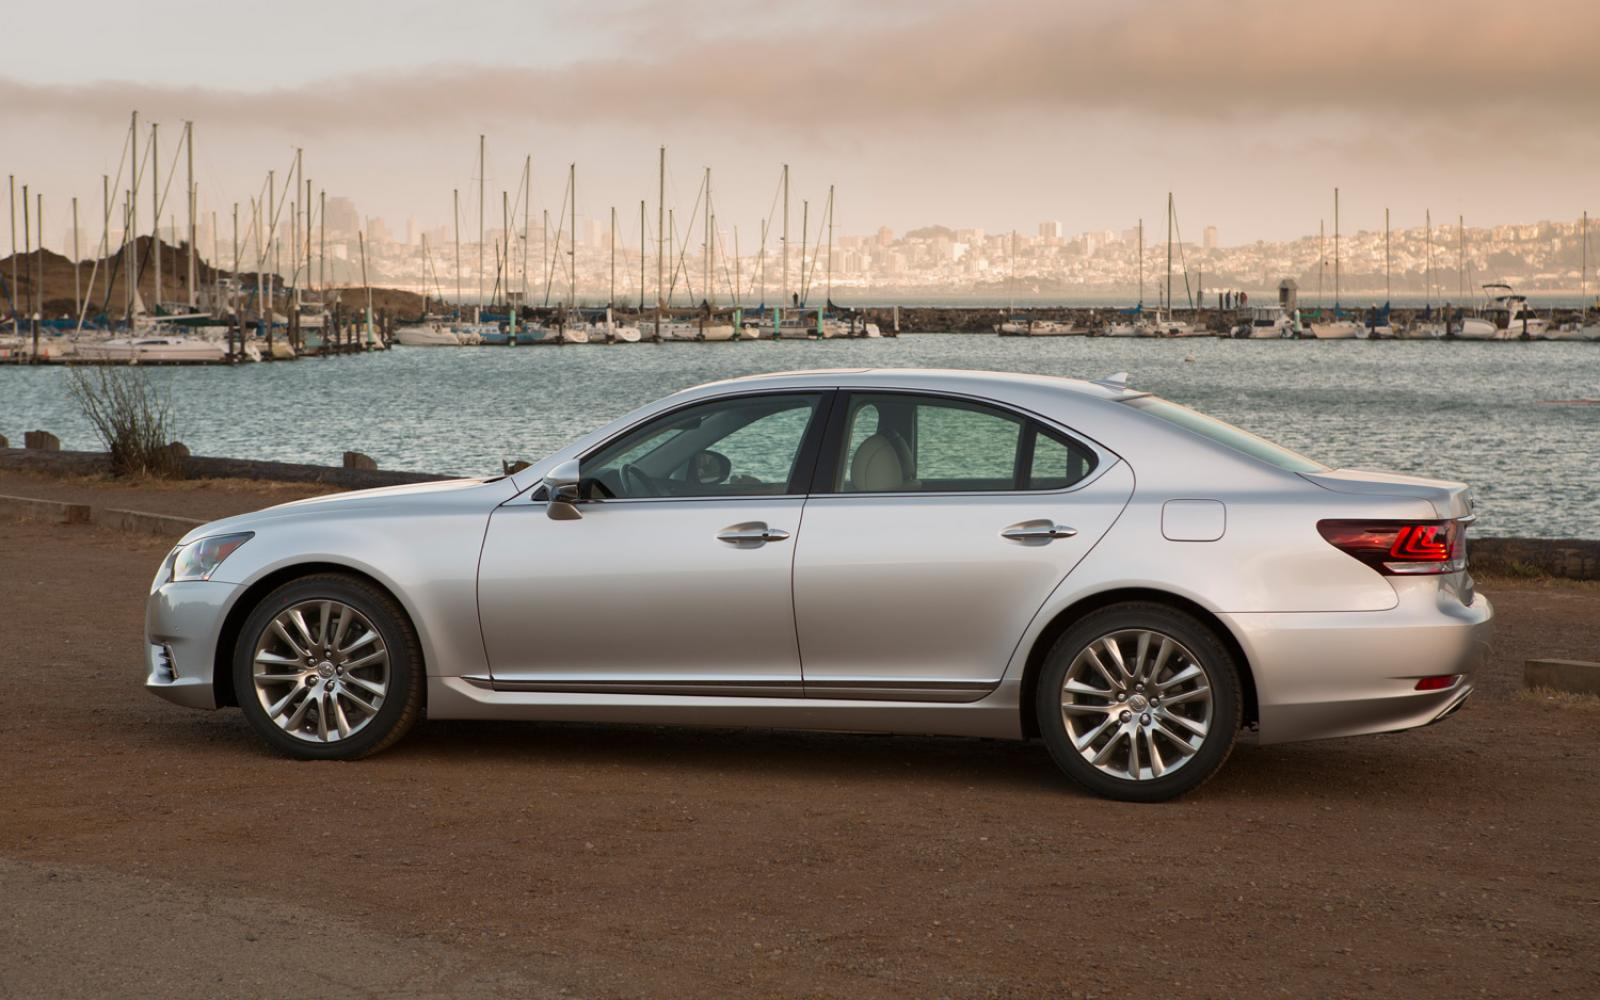 nm details sedan lexus in stock photo sale for albuquerque vehicle ls